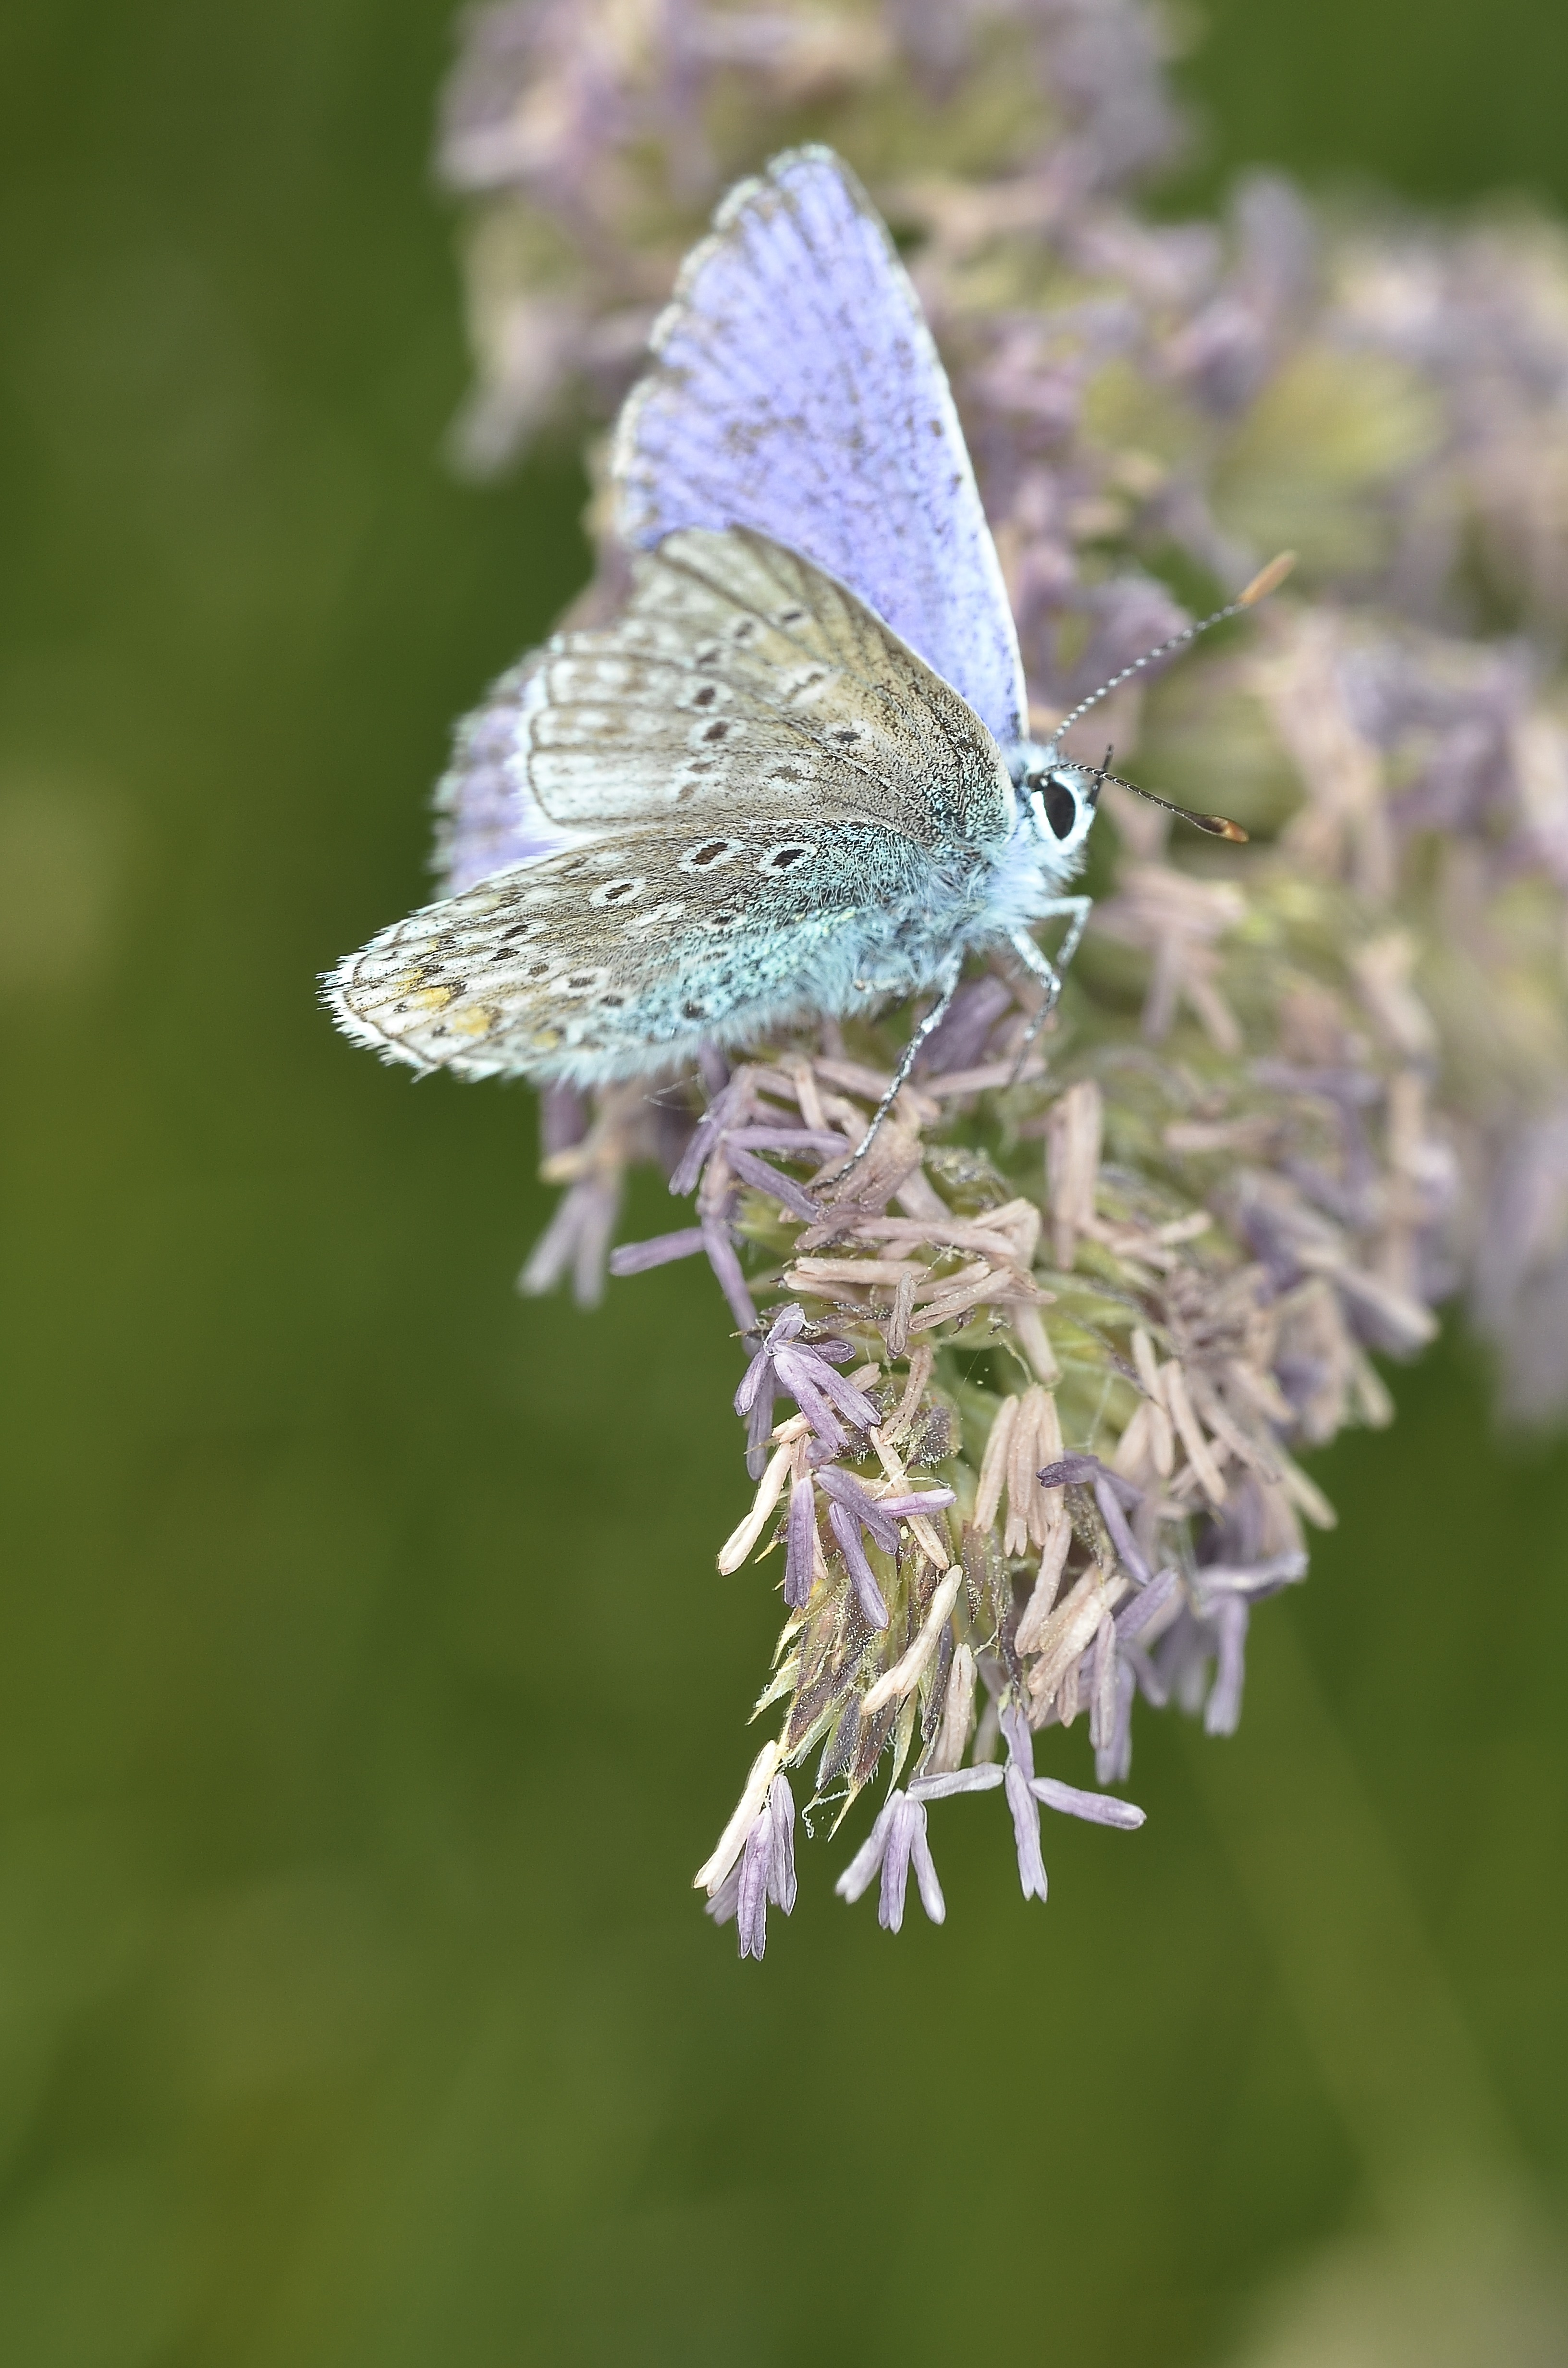 More Wallpaper For Iphone X Purple White Butterfly On Purple Petaled Flower During